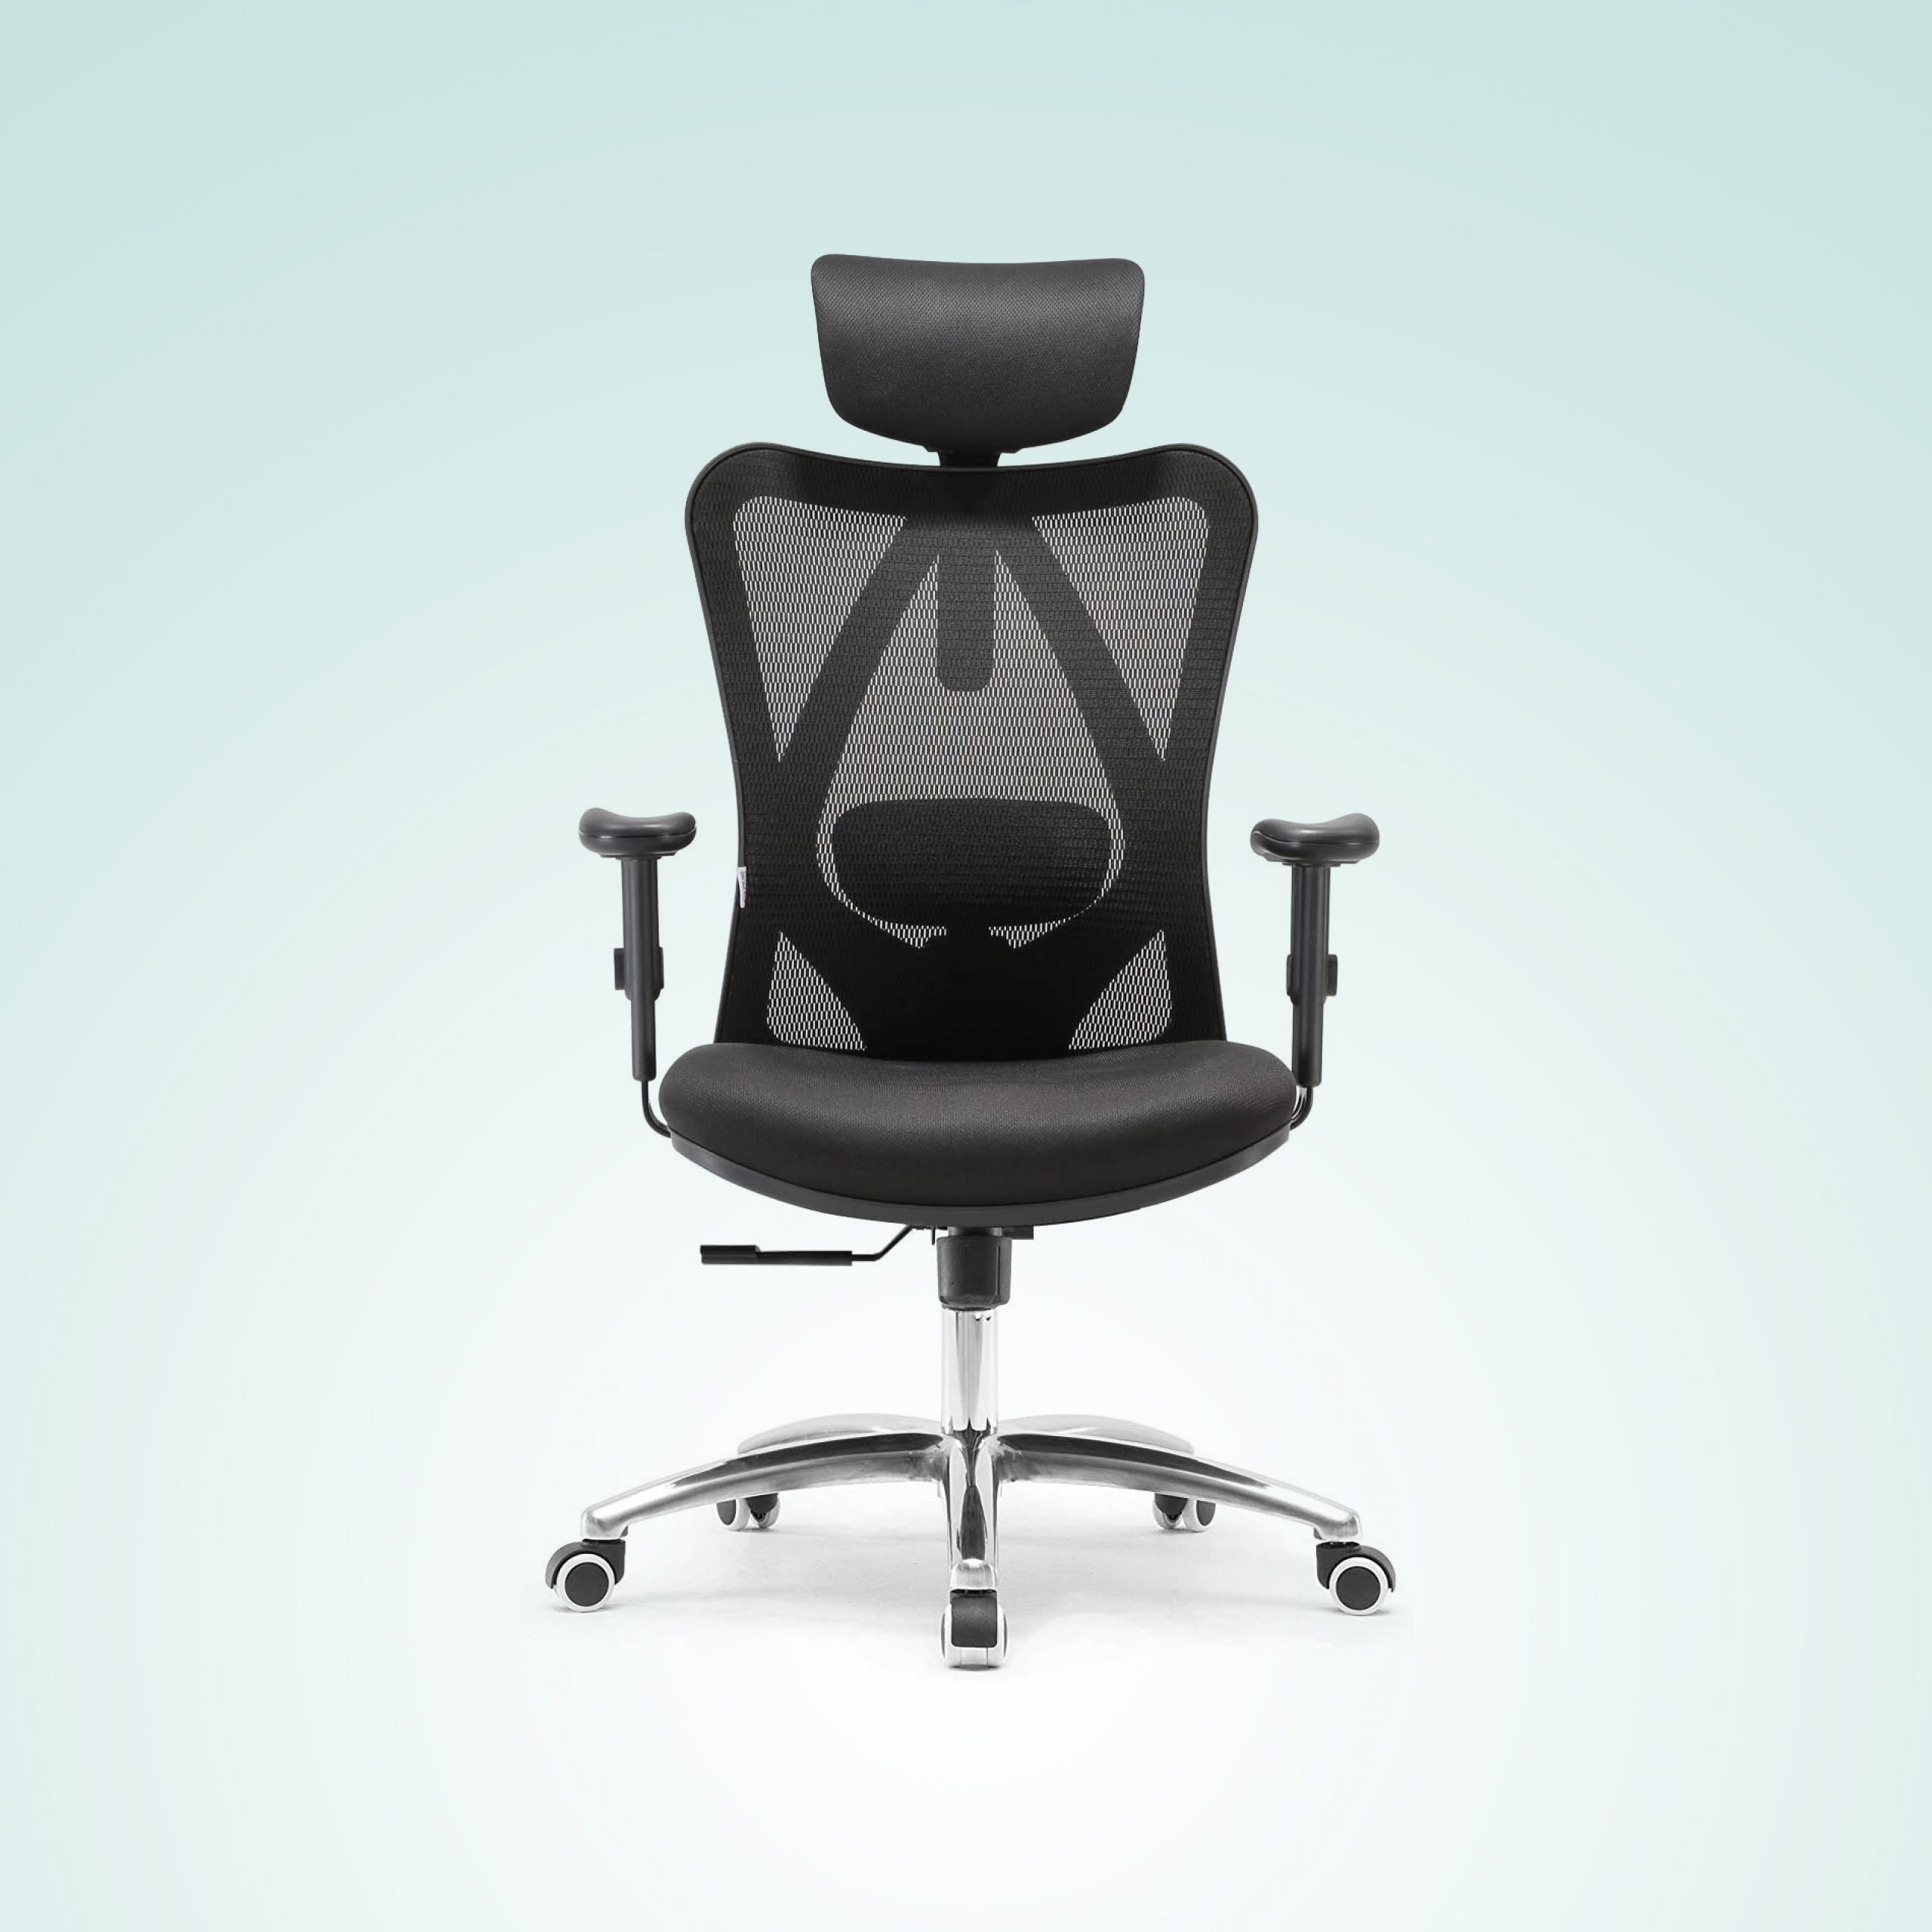 staple office chairs